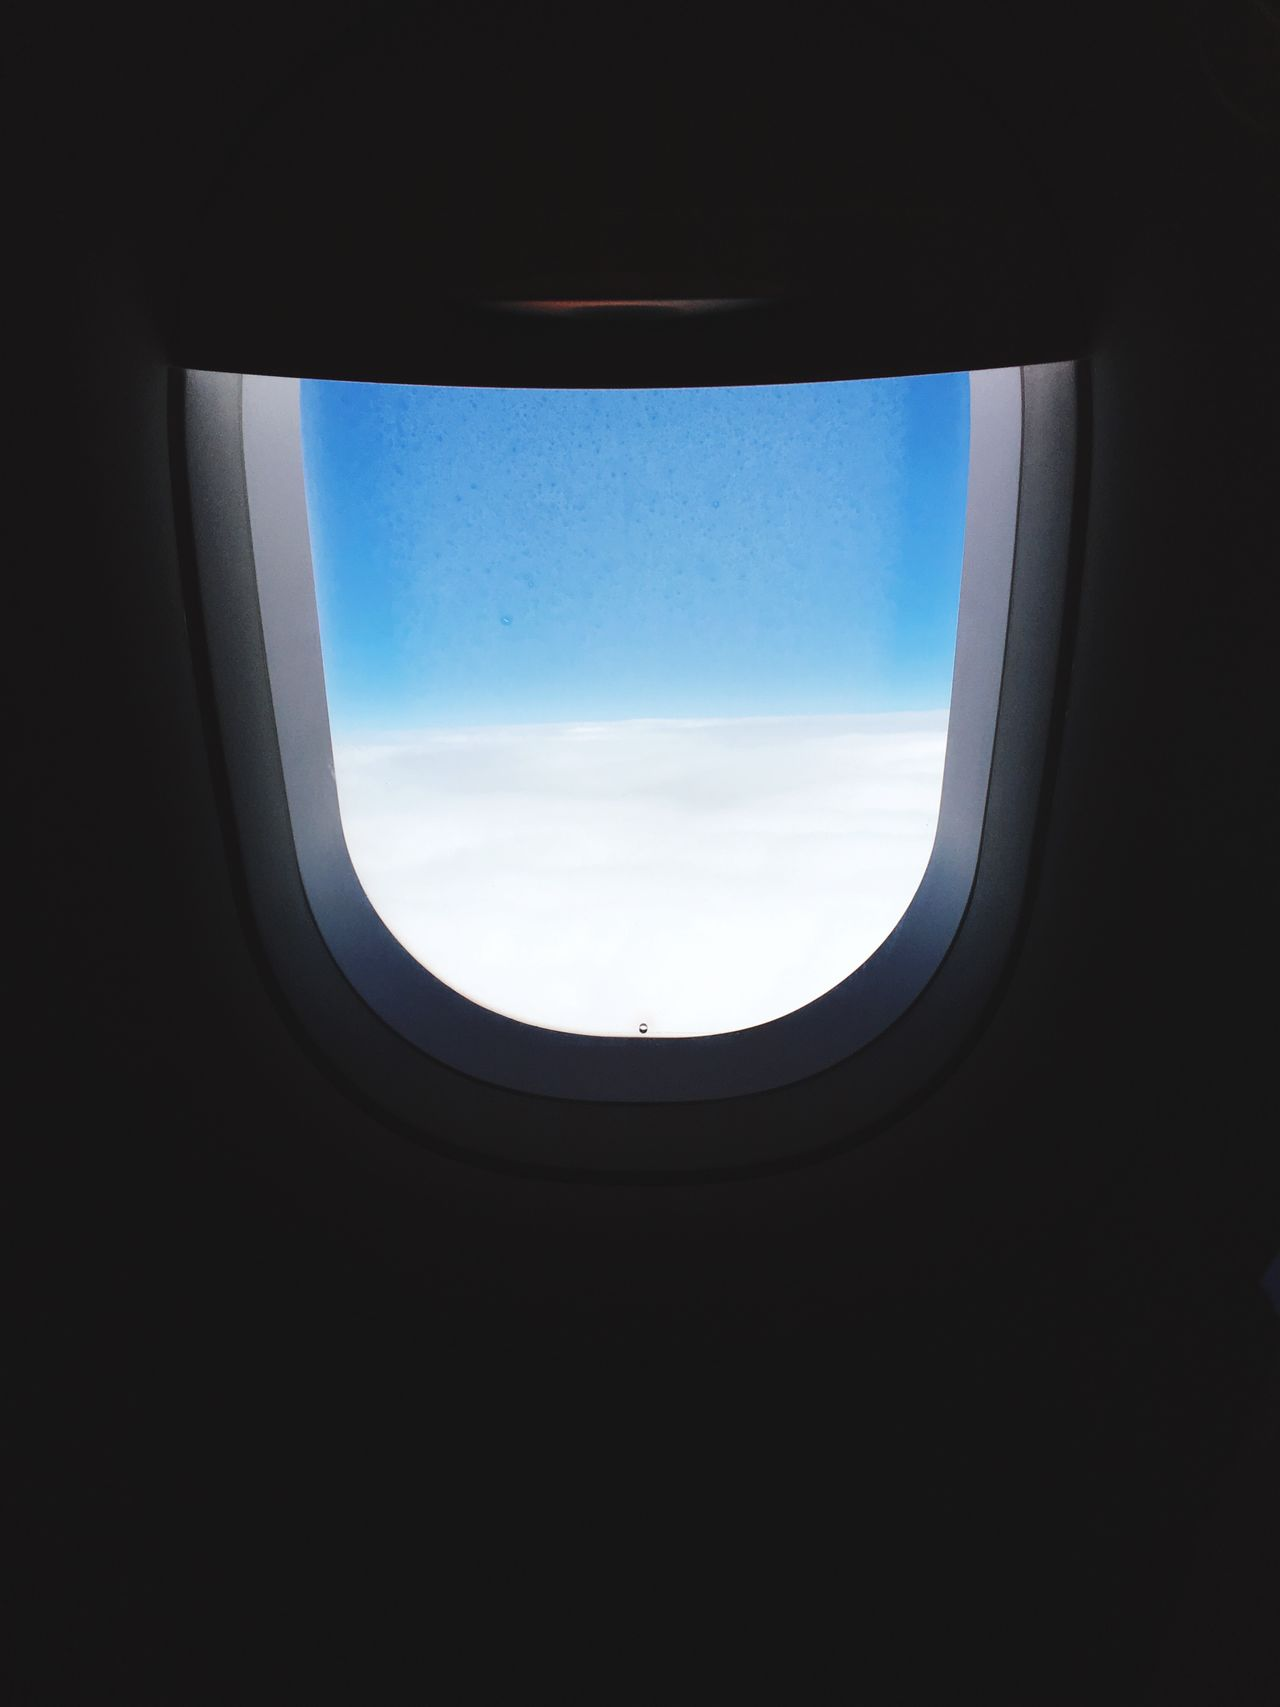 Airplane Window Vehicle Interior Transportation Air Vehicle Sky Journey Travel Cloud - Sky Flying Mode Of Transport No People Indoors  Day Commercial Airplane Nature Close-up Airplane Wing